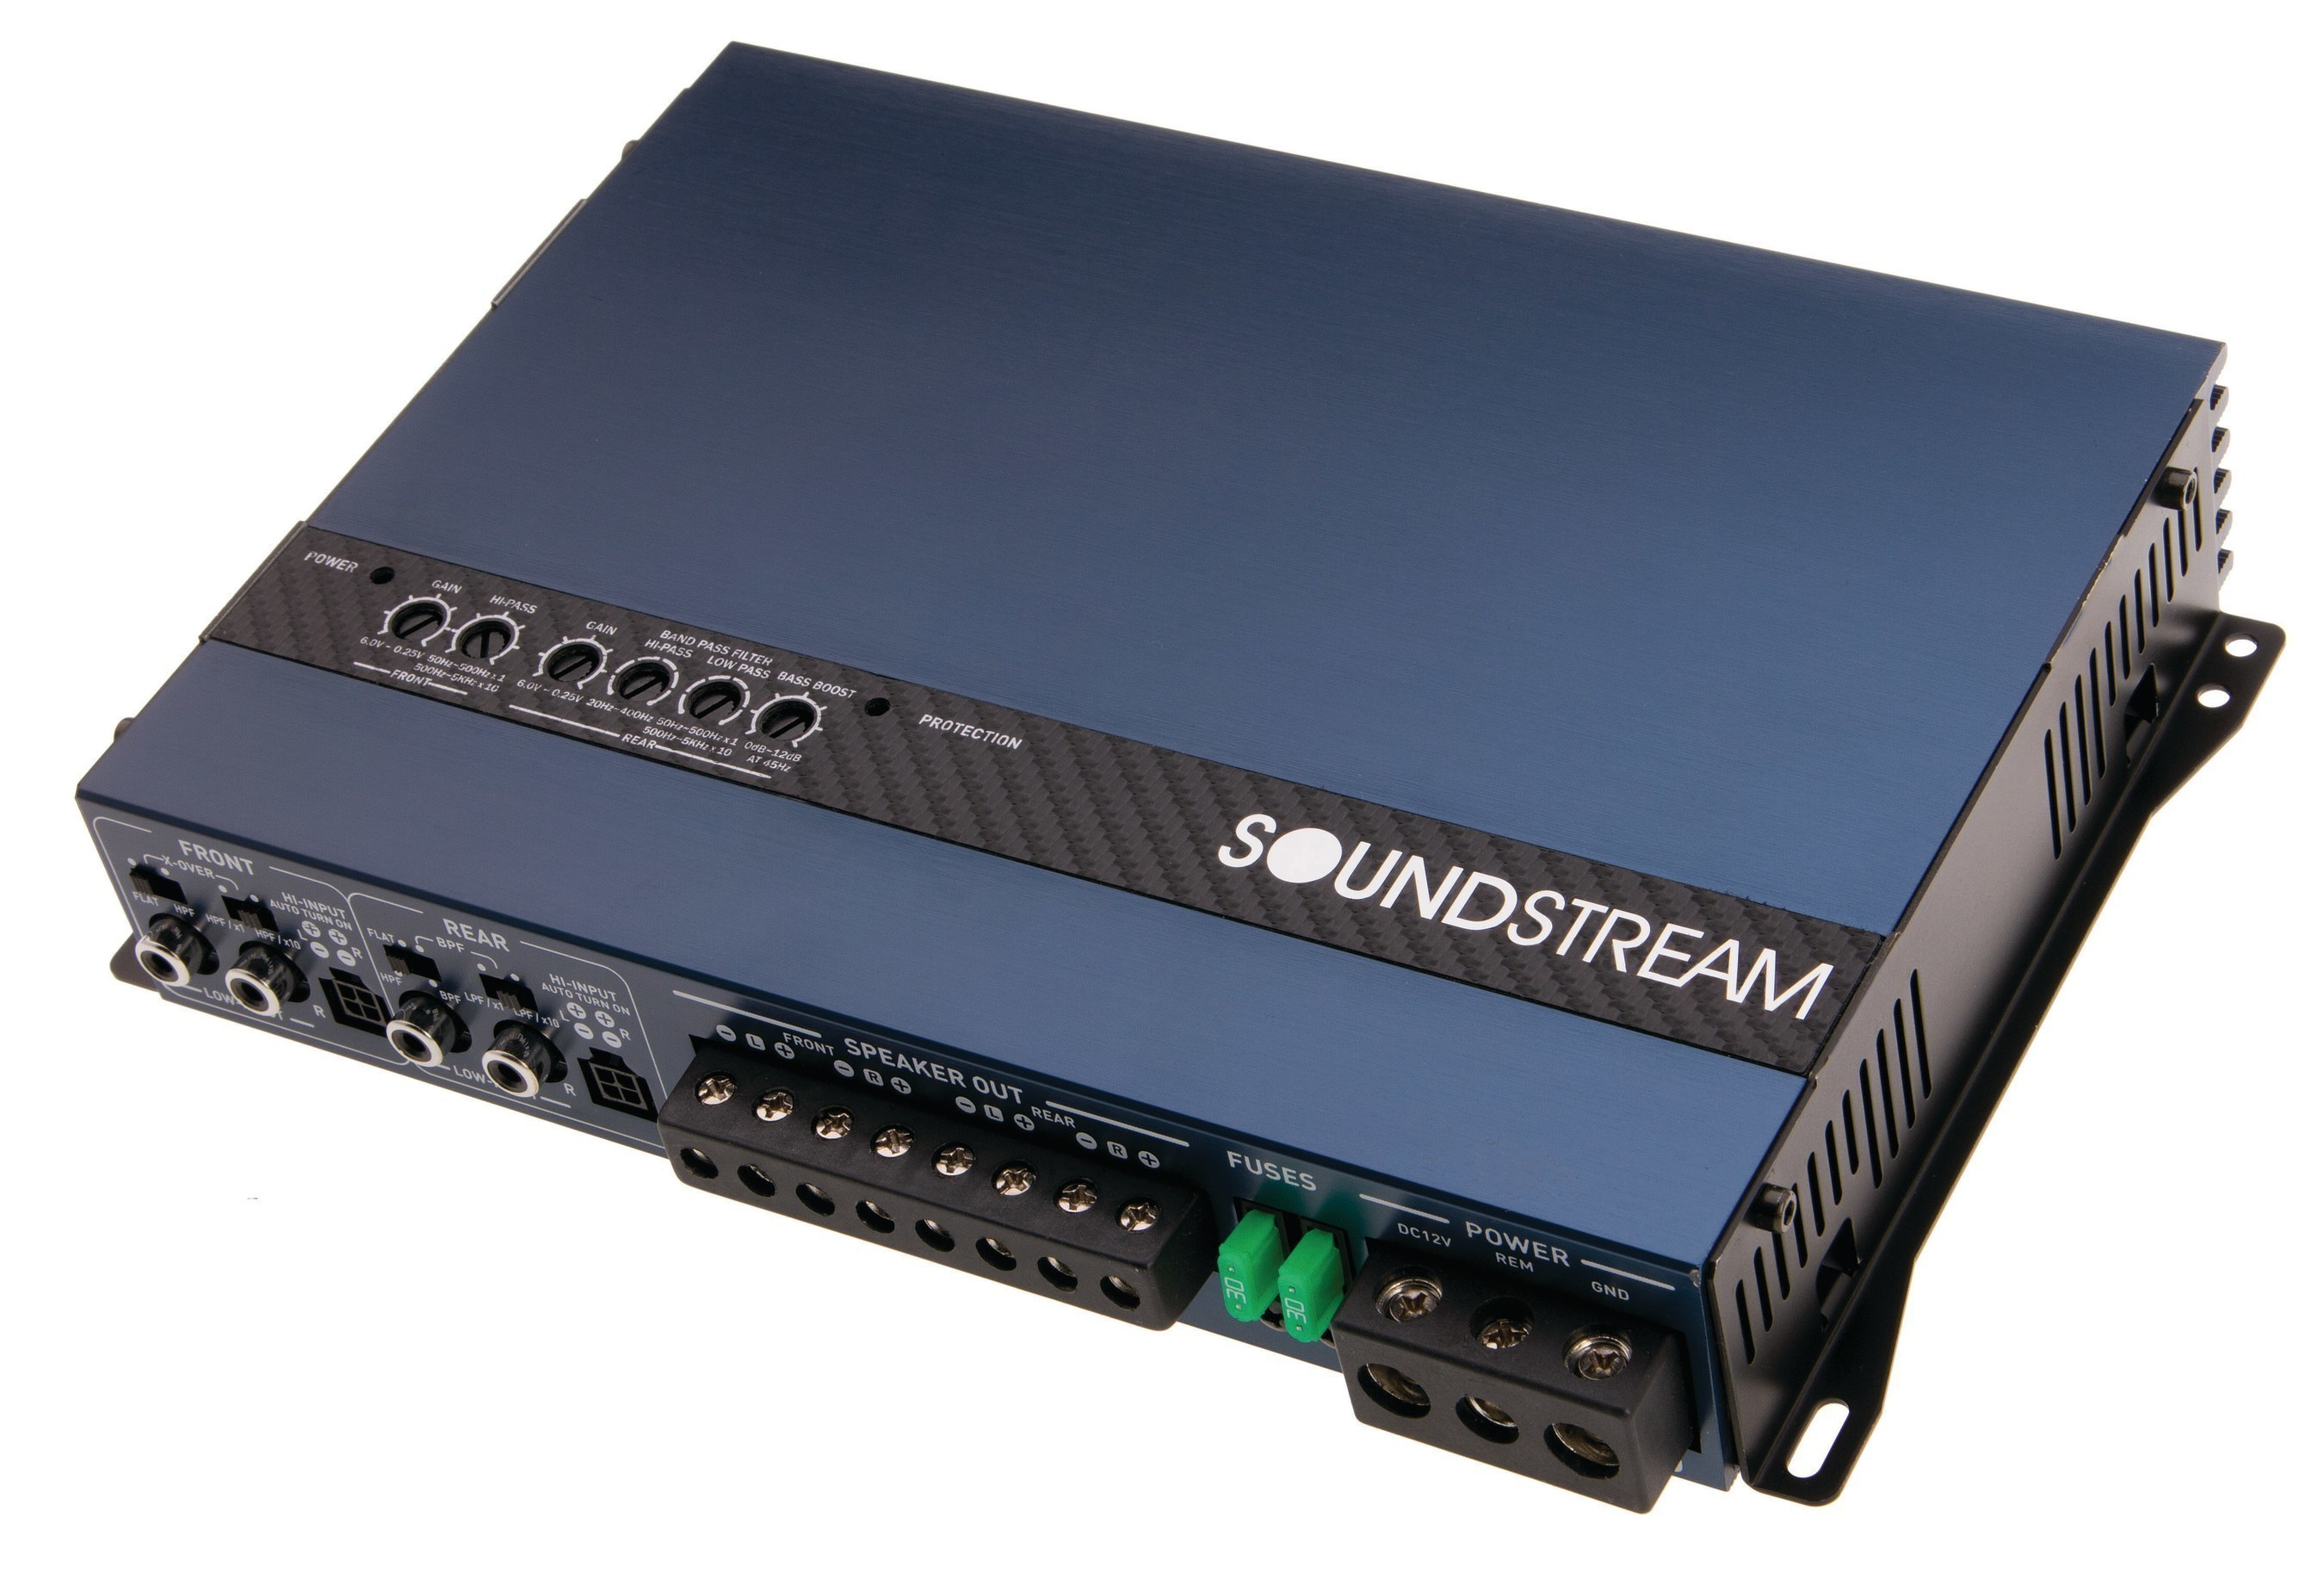 Epsilon Electronics Inc Plans On Unveiling Their New Soundstream Rubicon Amplifiers At CES 2016